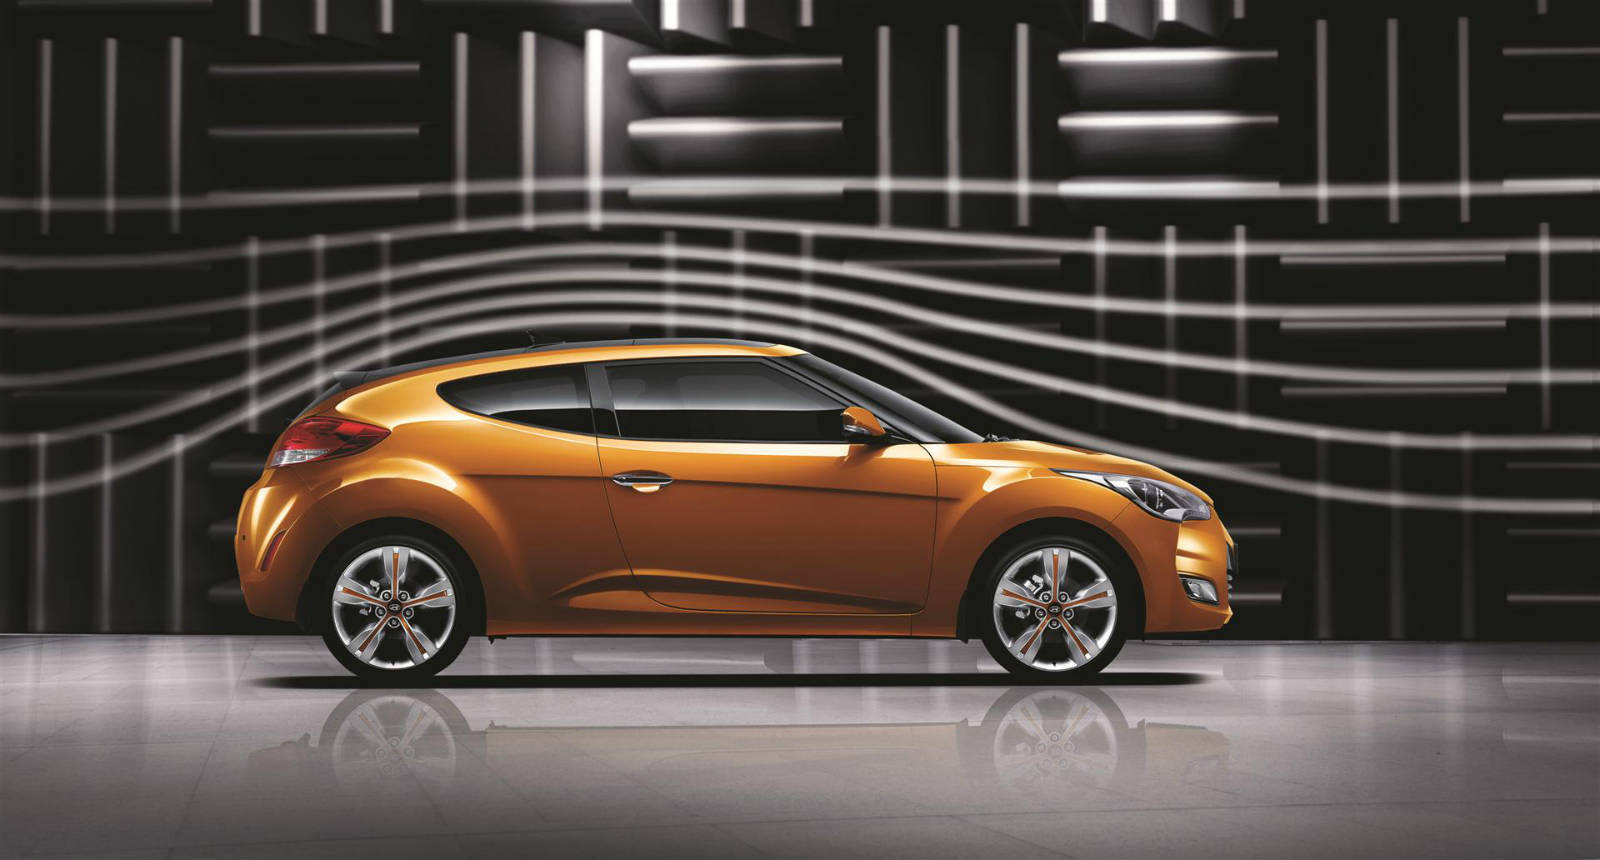 The Aerodynamics Of Todays Cars Speed Carz Hyundai Veloster Wiring Diagram